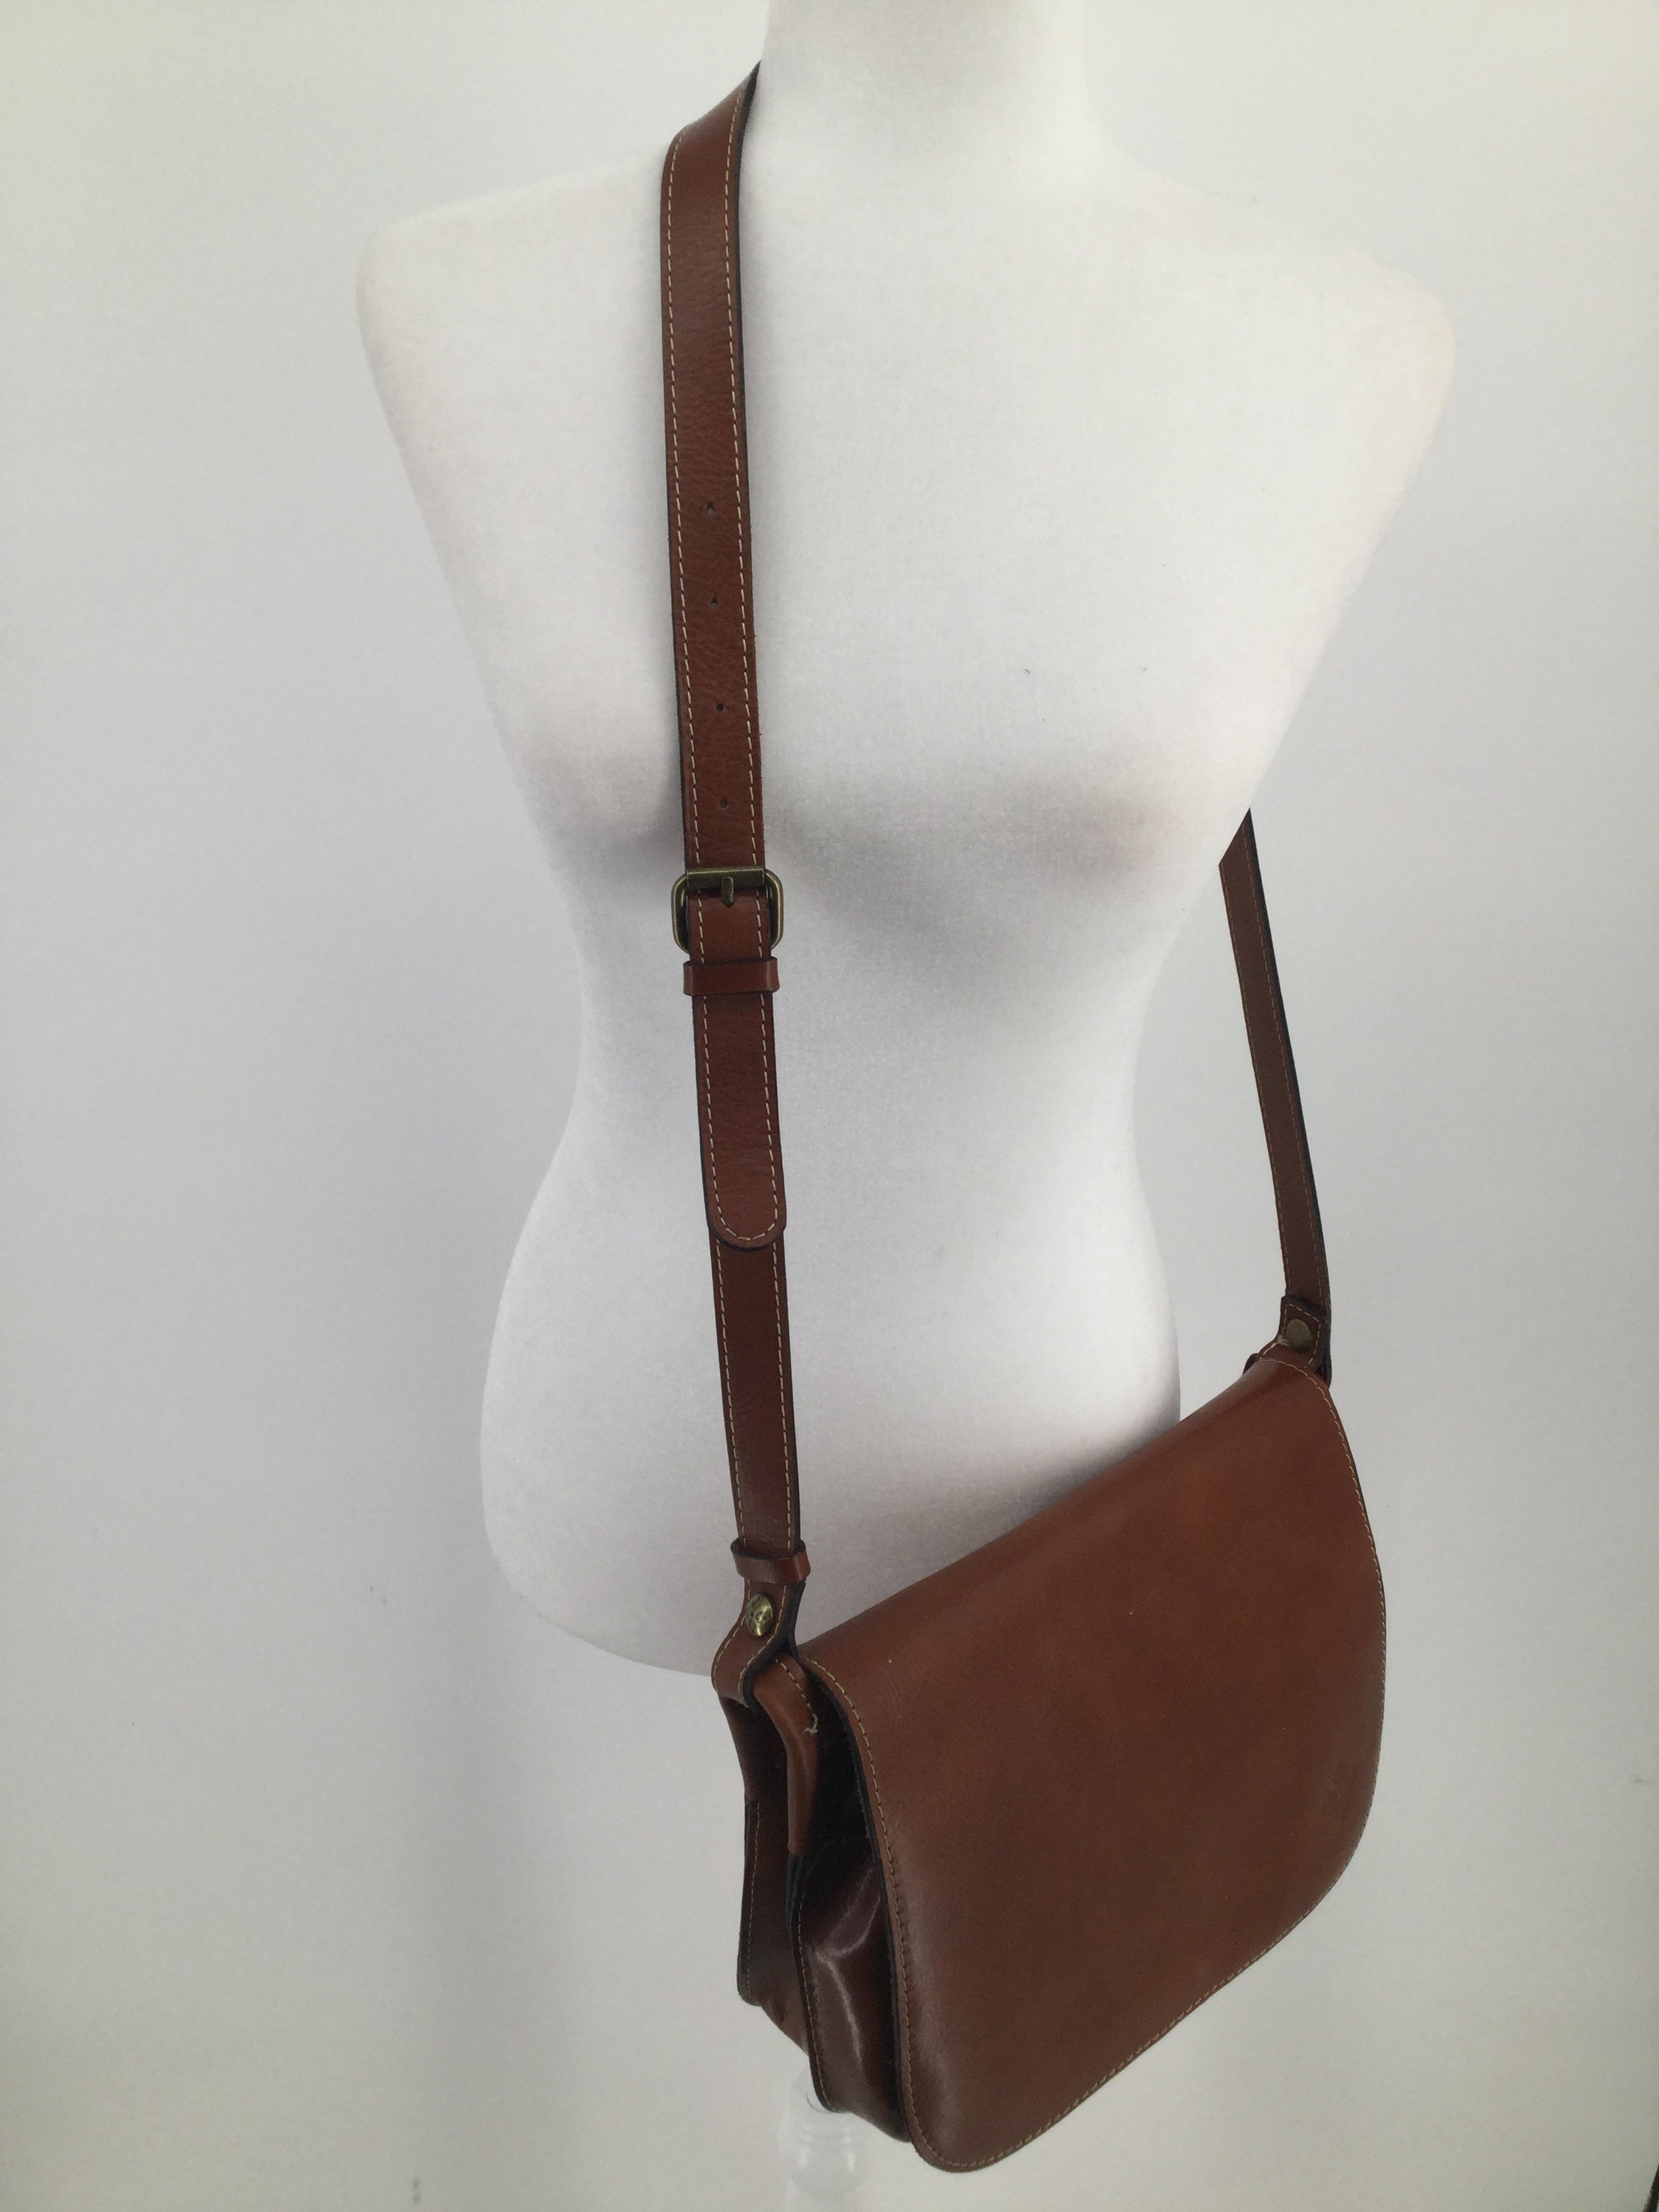 Patricia Nash Handbag Size:large - CAMEL BROWN LEATHER SADDLE BAG